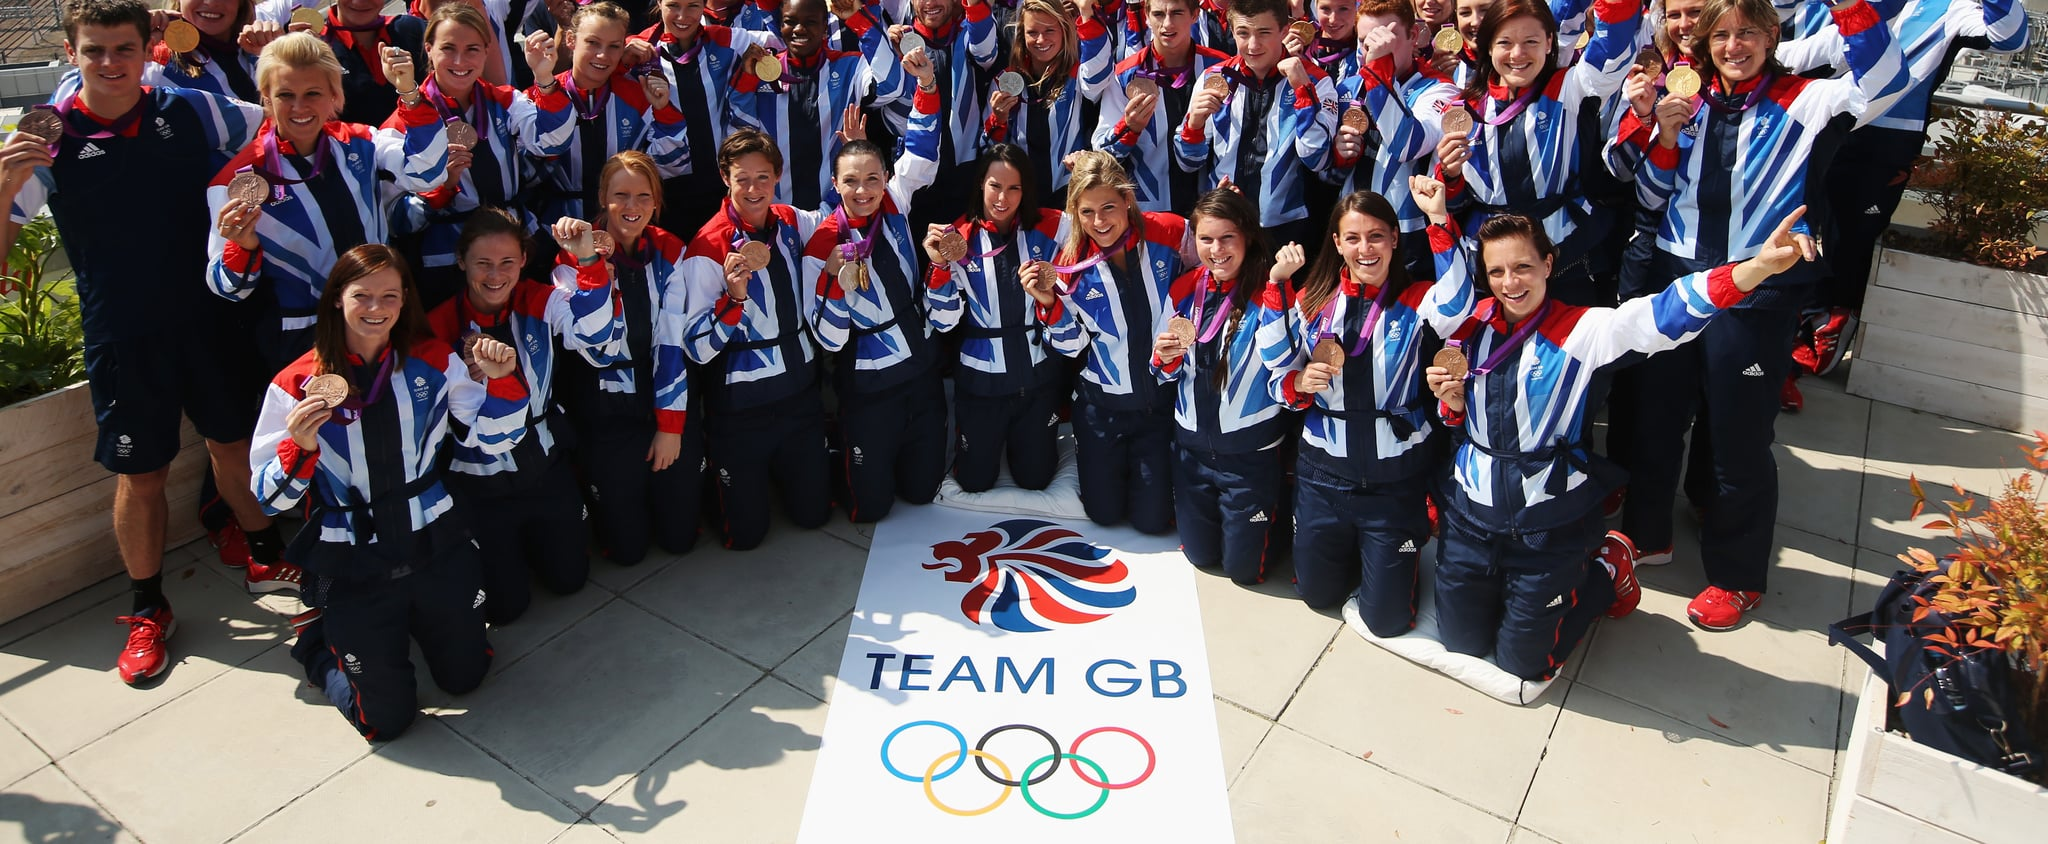 BBC to Stream Team GB Homecoming Concert With Clara Amfo